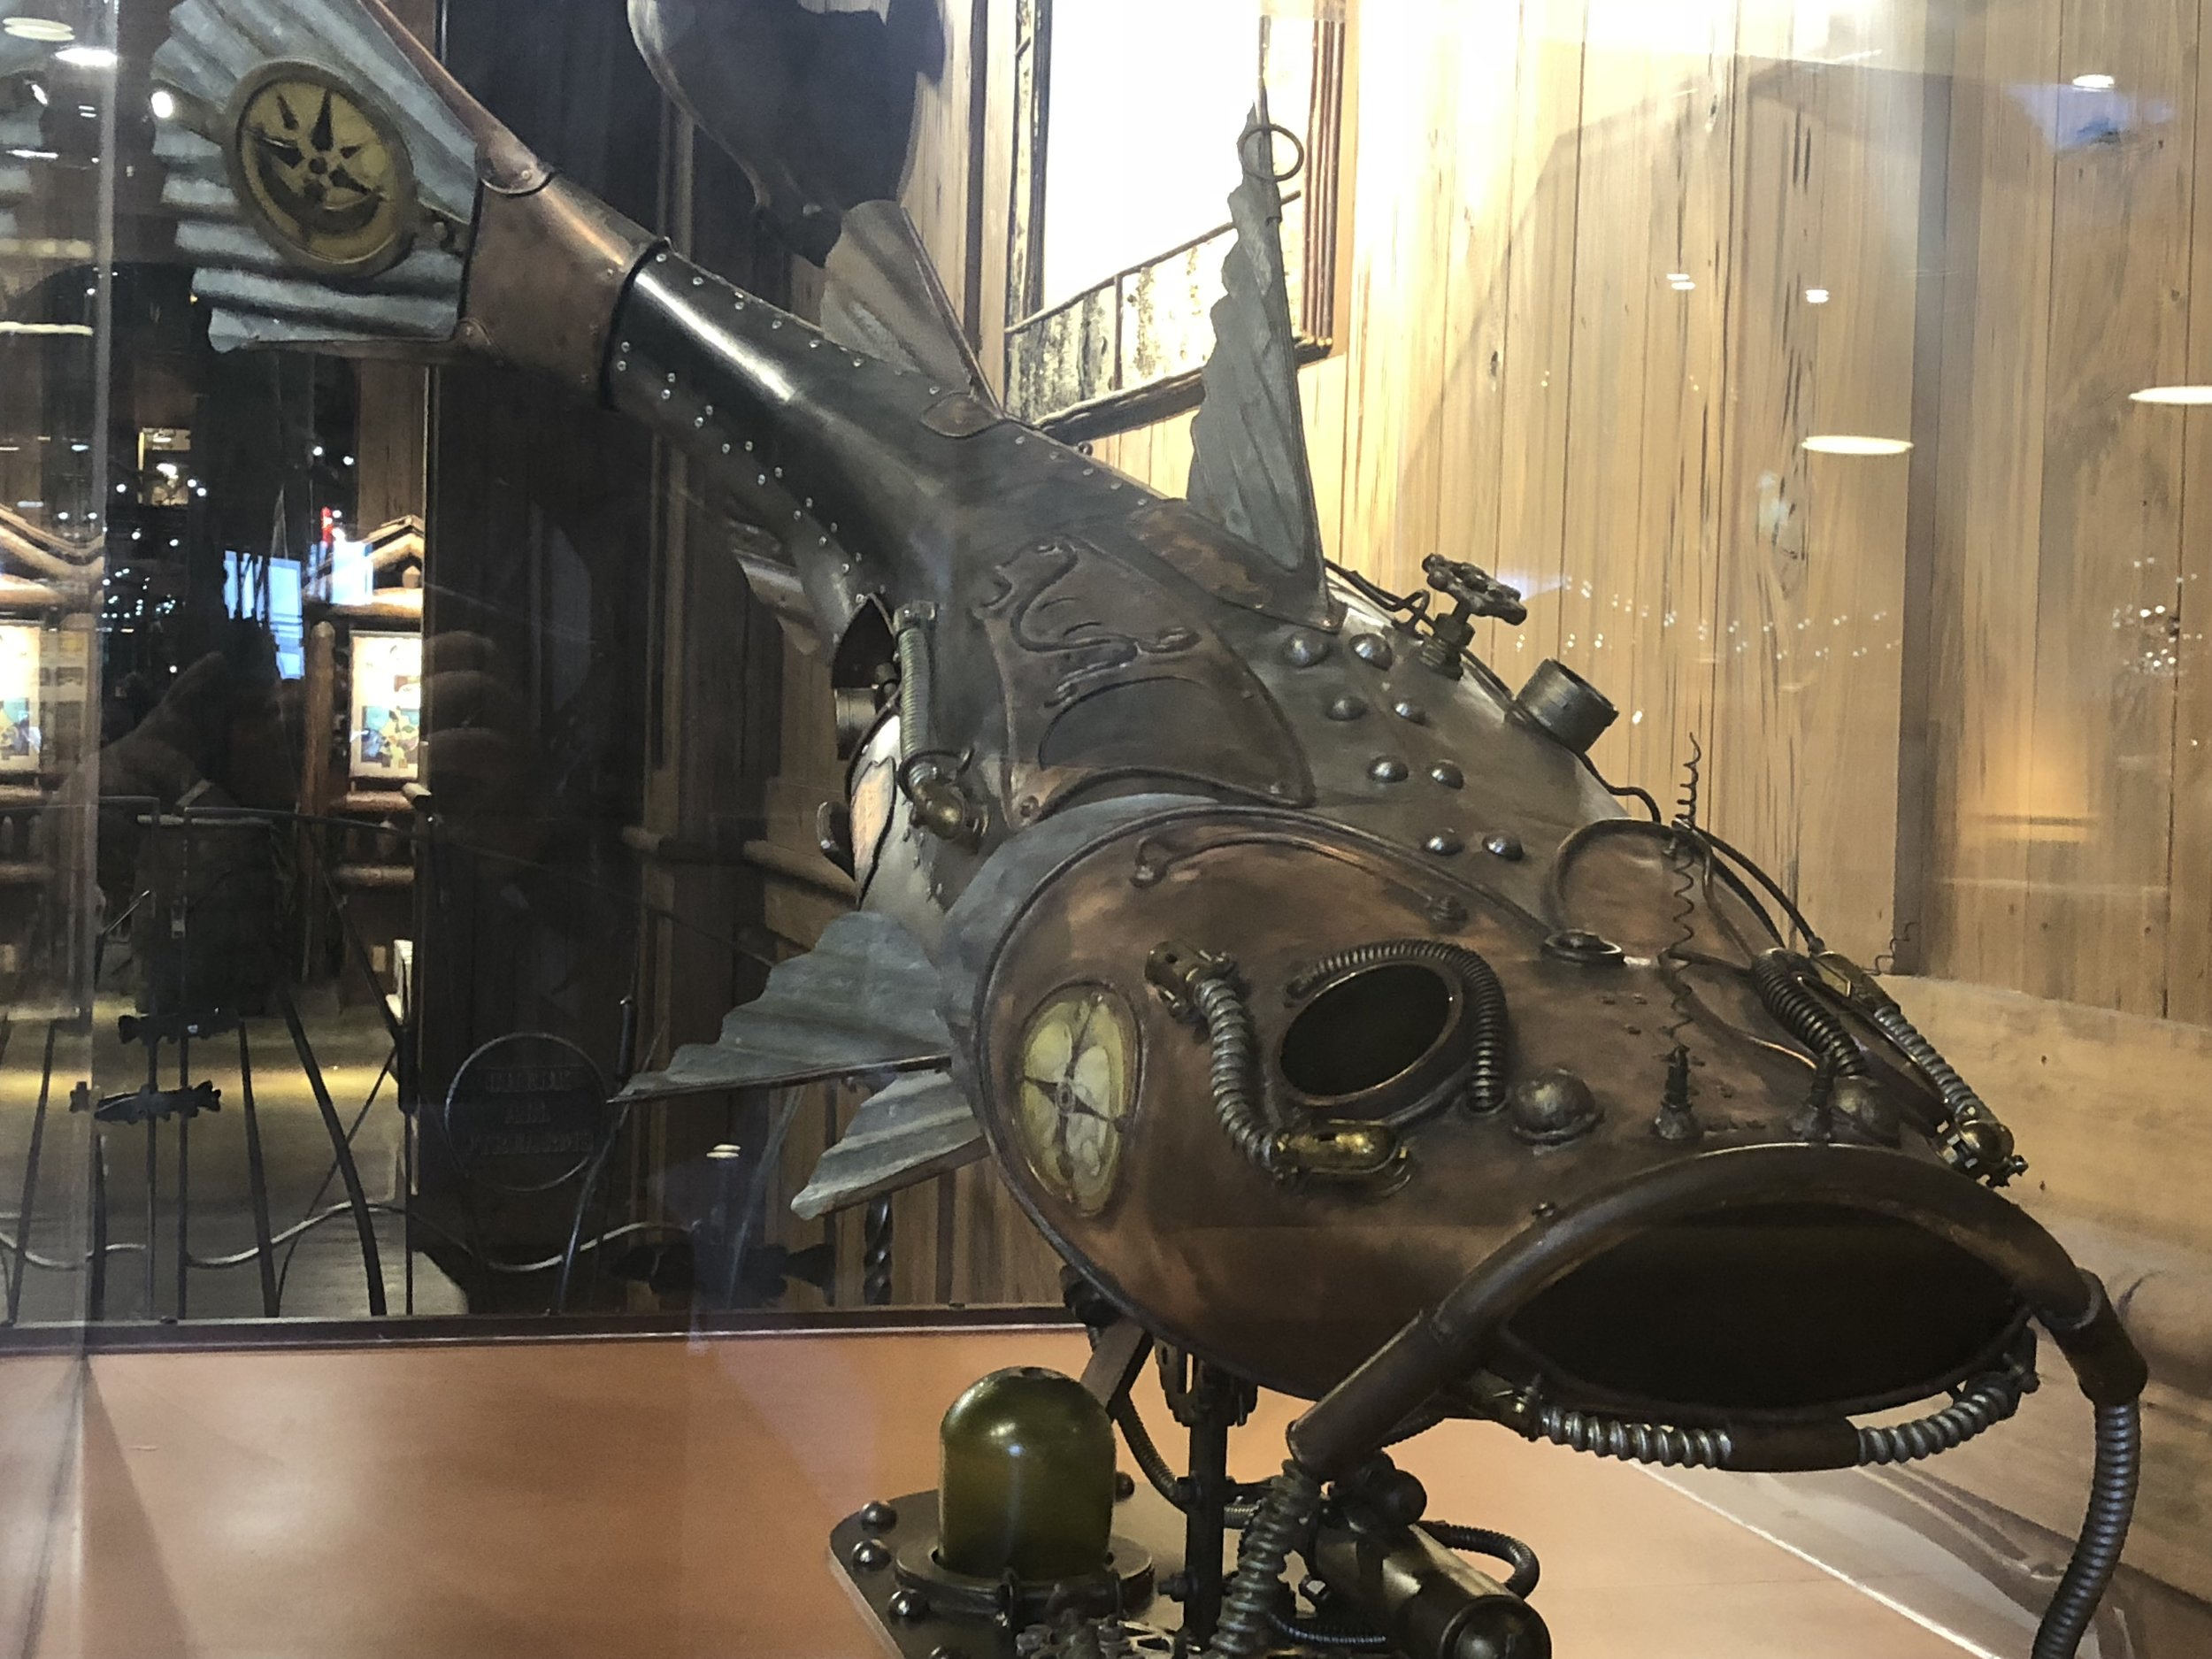 This was the only steampunk fish on the ground floor, but there were a ton more up in the top floor restaurant